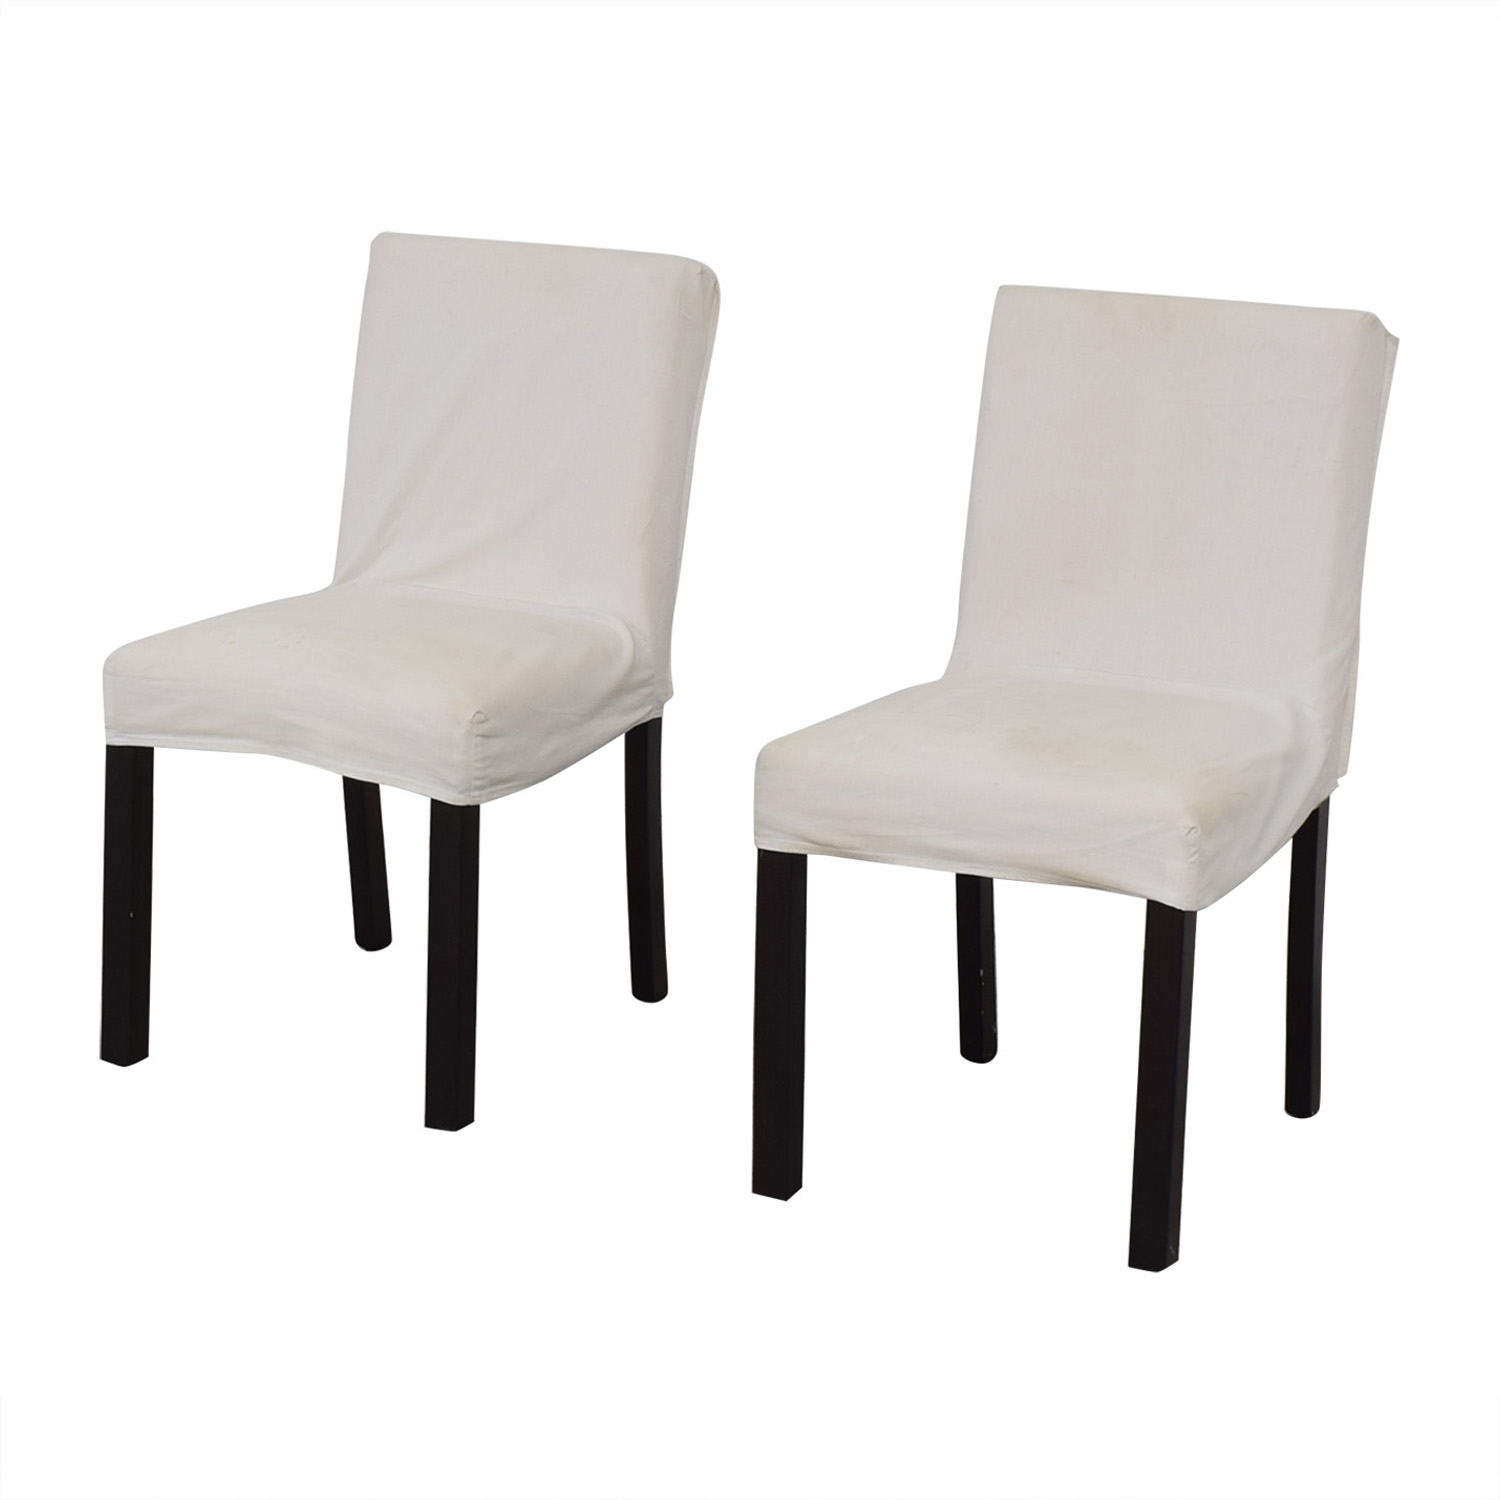 Crate & Barrel Crate & Barrel White Chairs nj